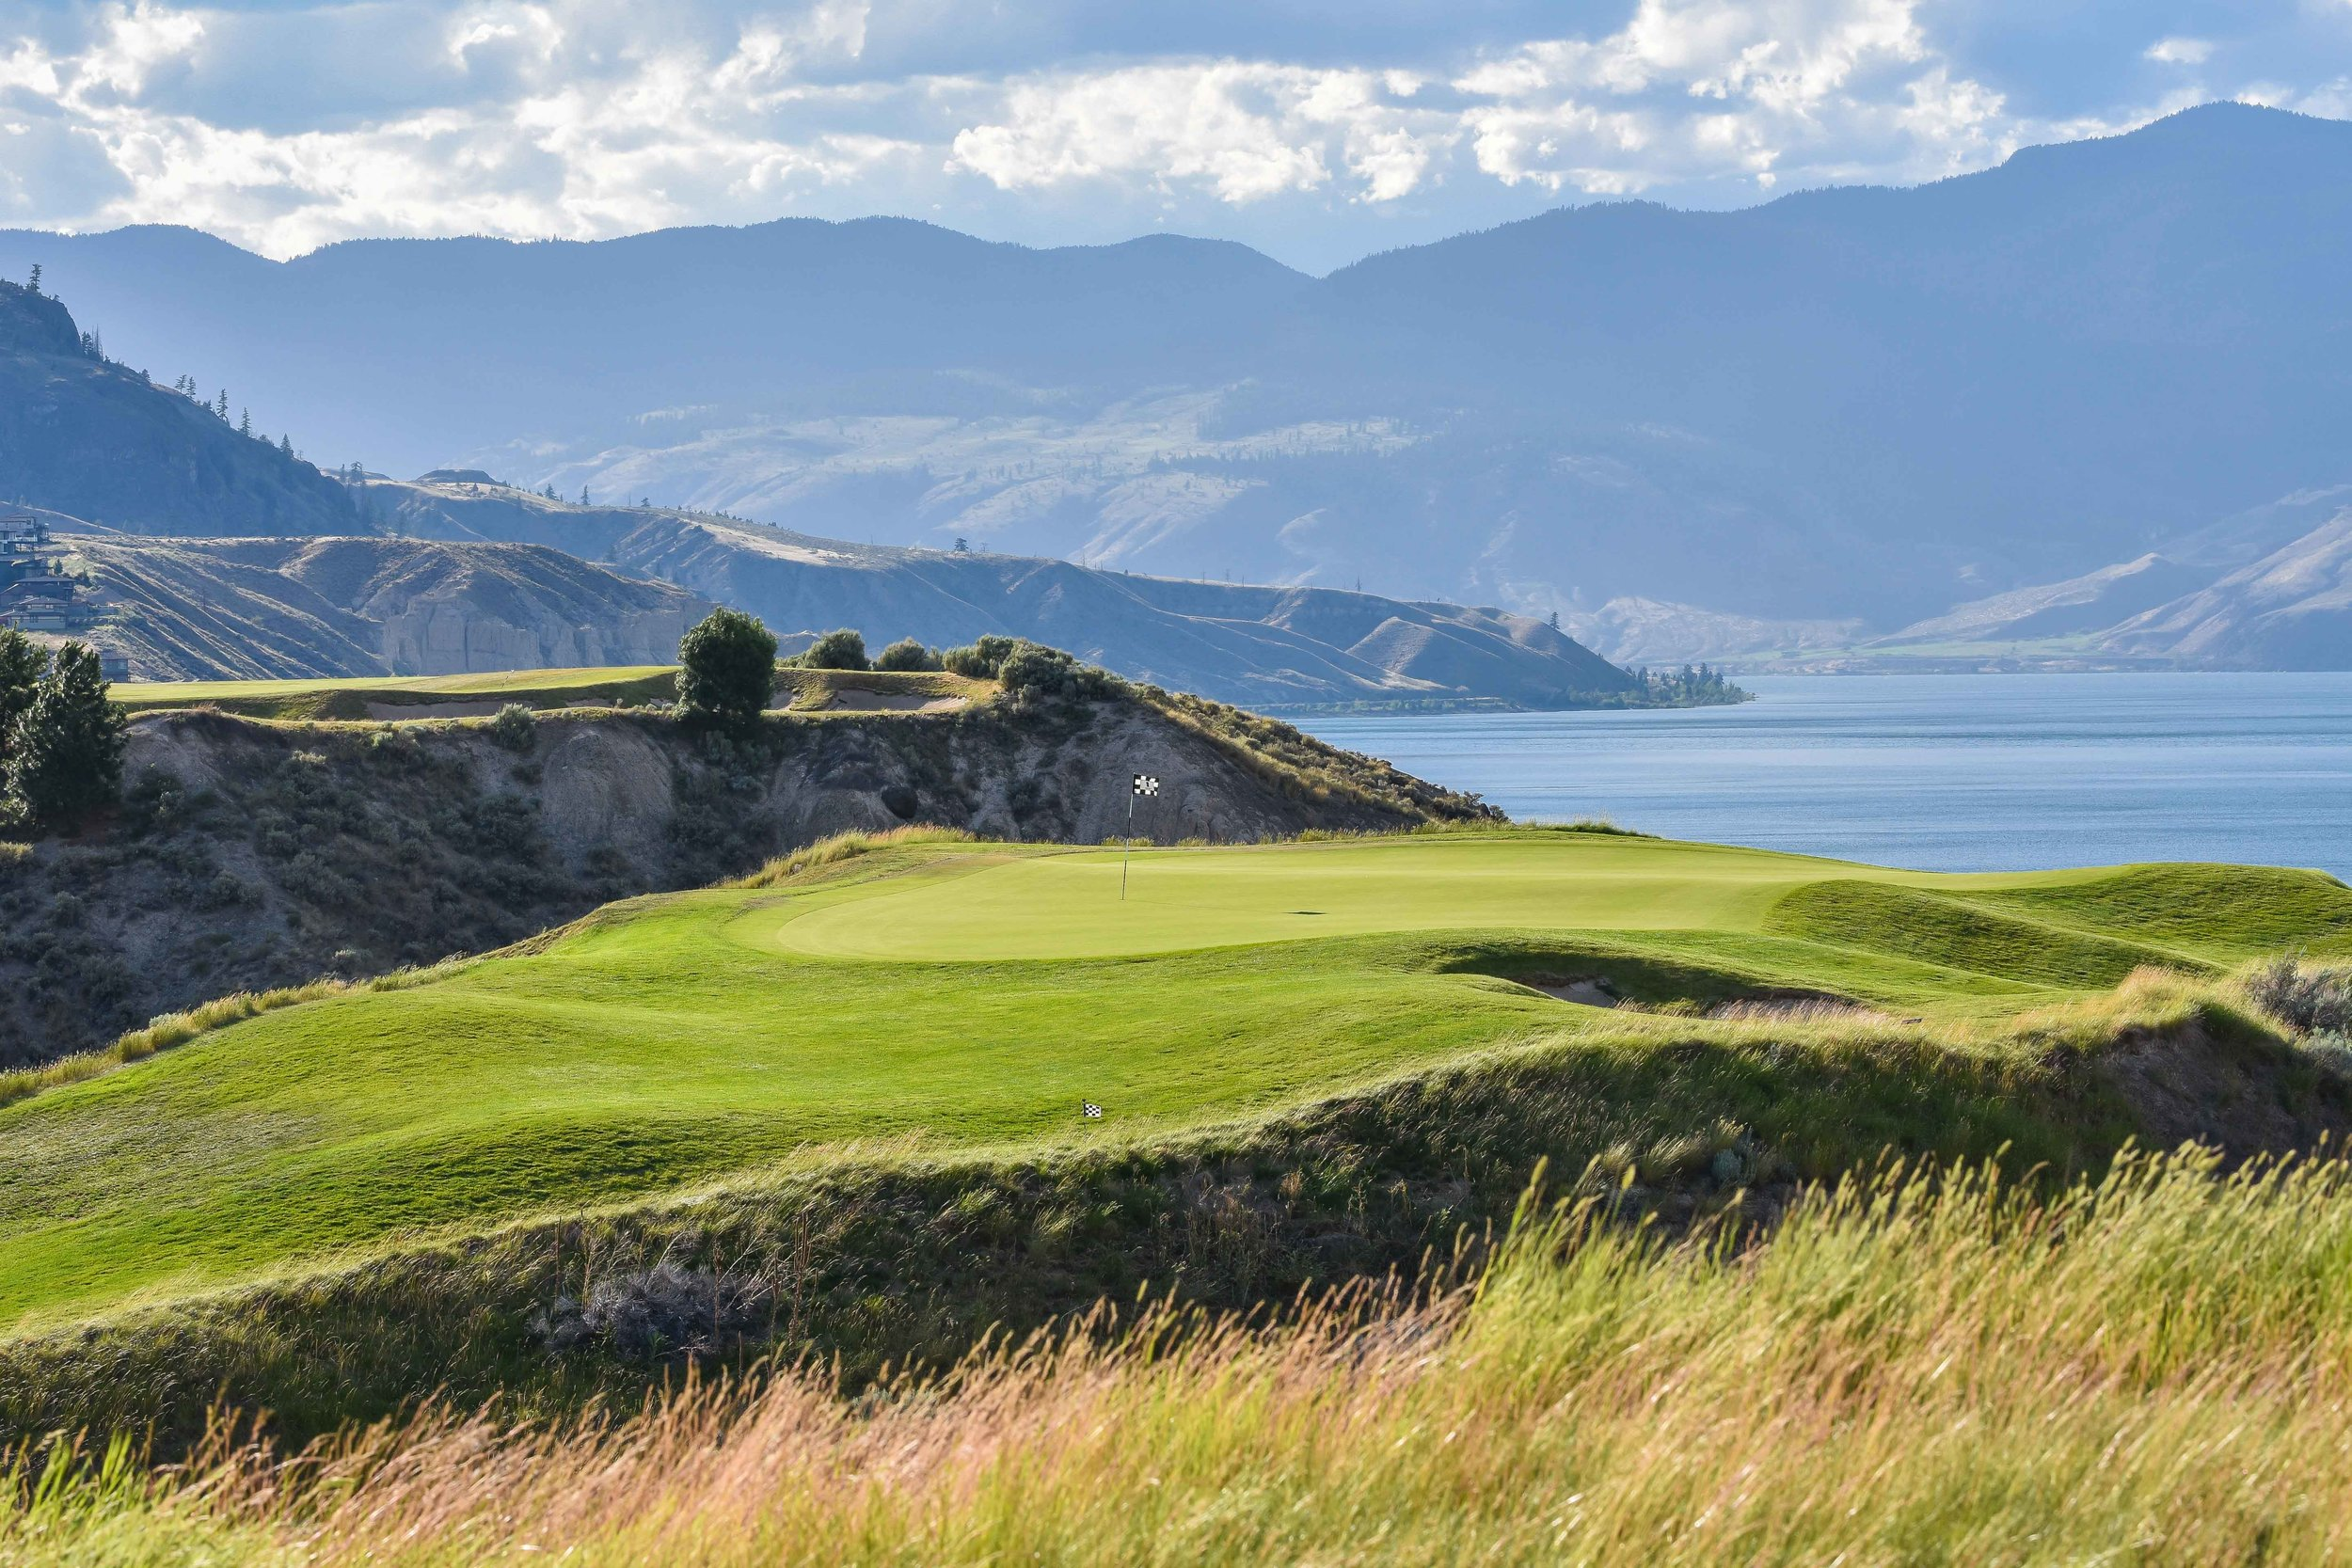 The 7th hole at Tobiano thrills and delights the golfer soul.